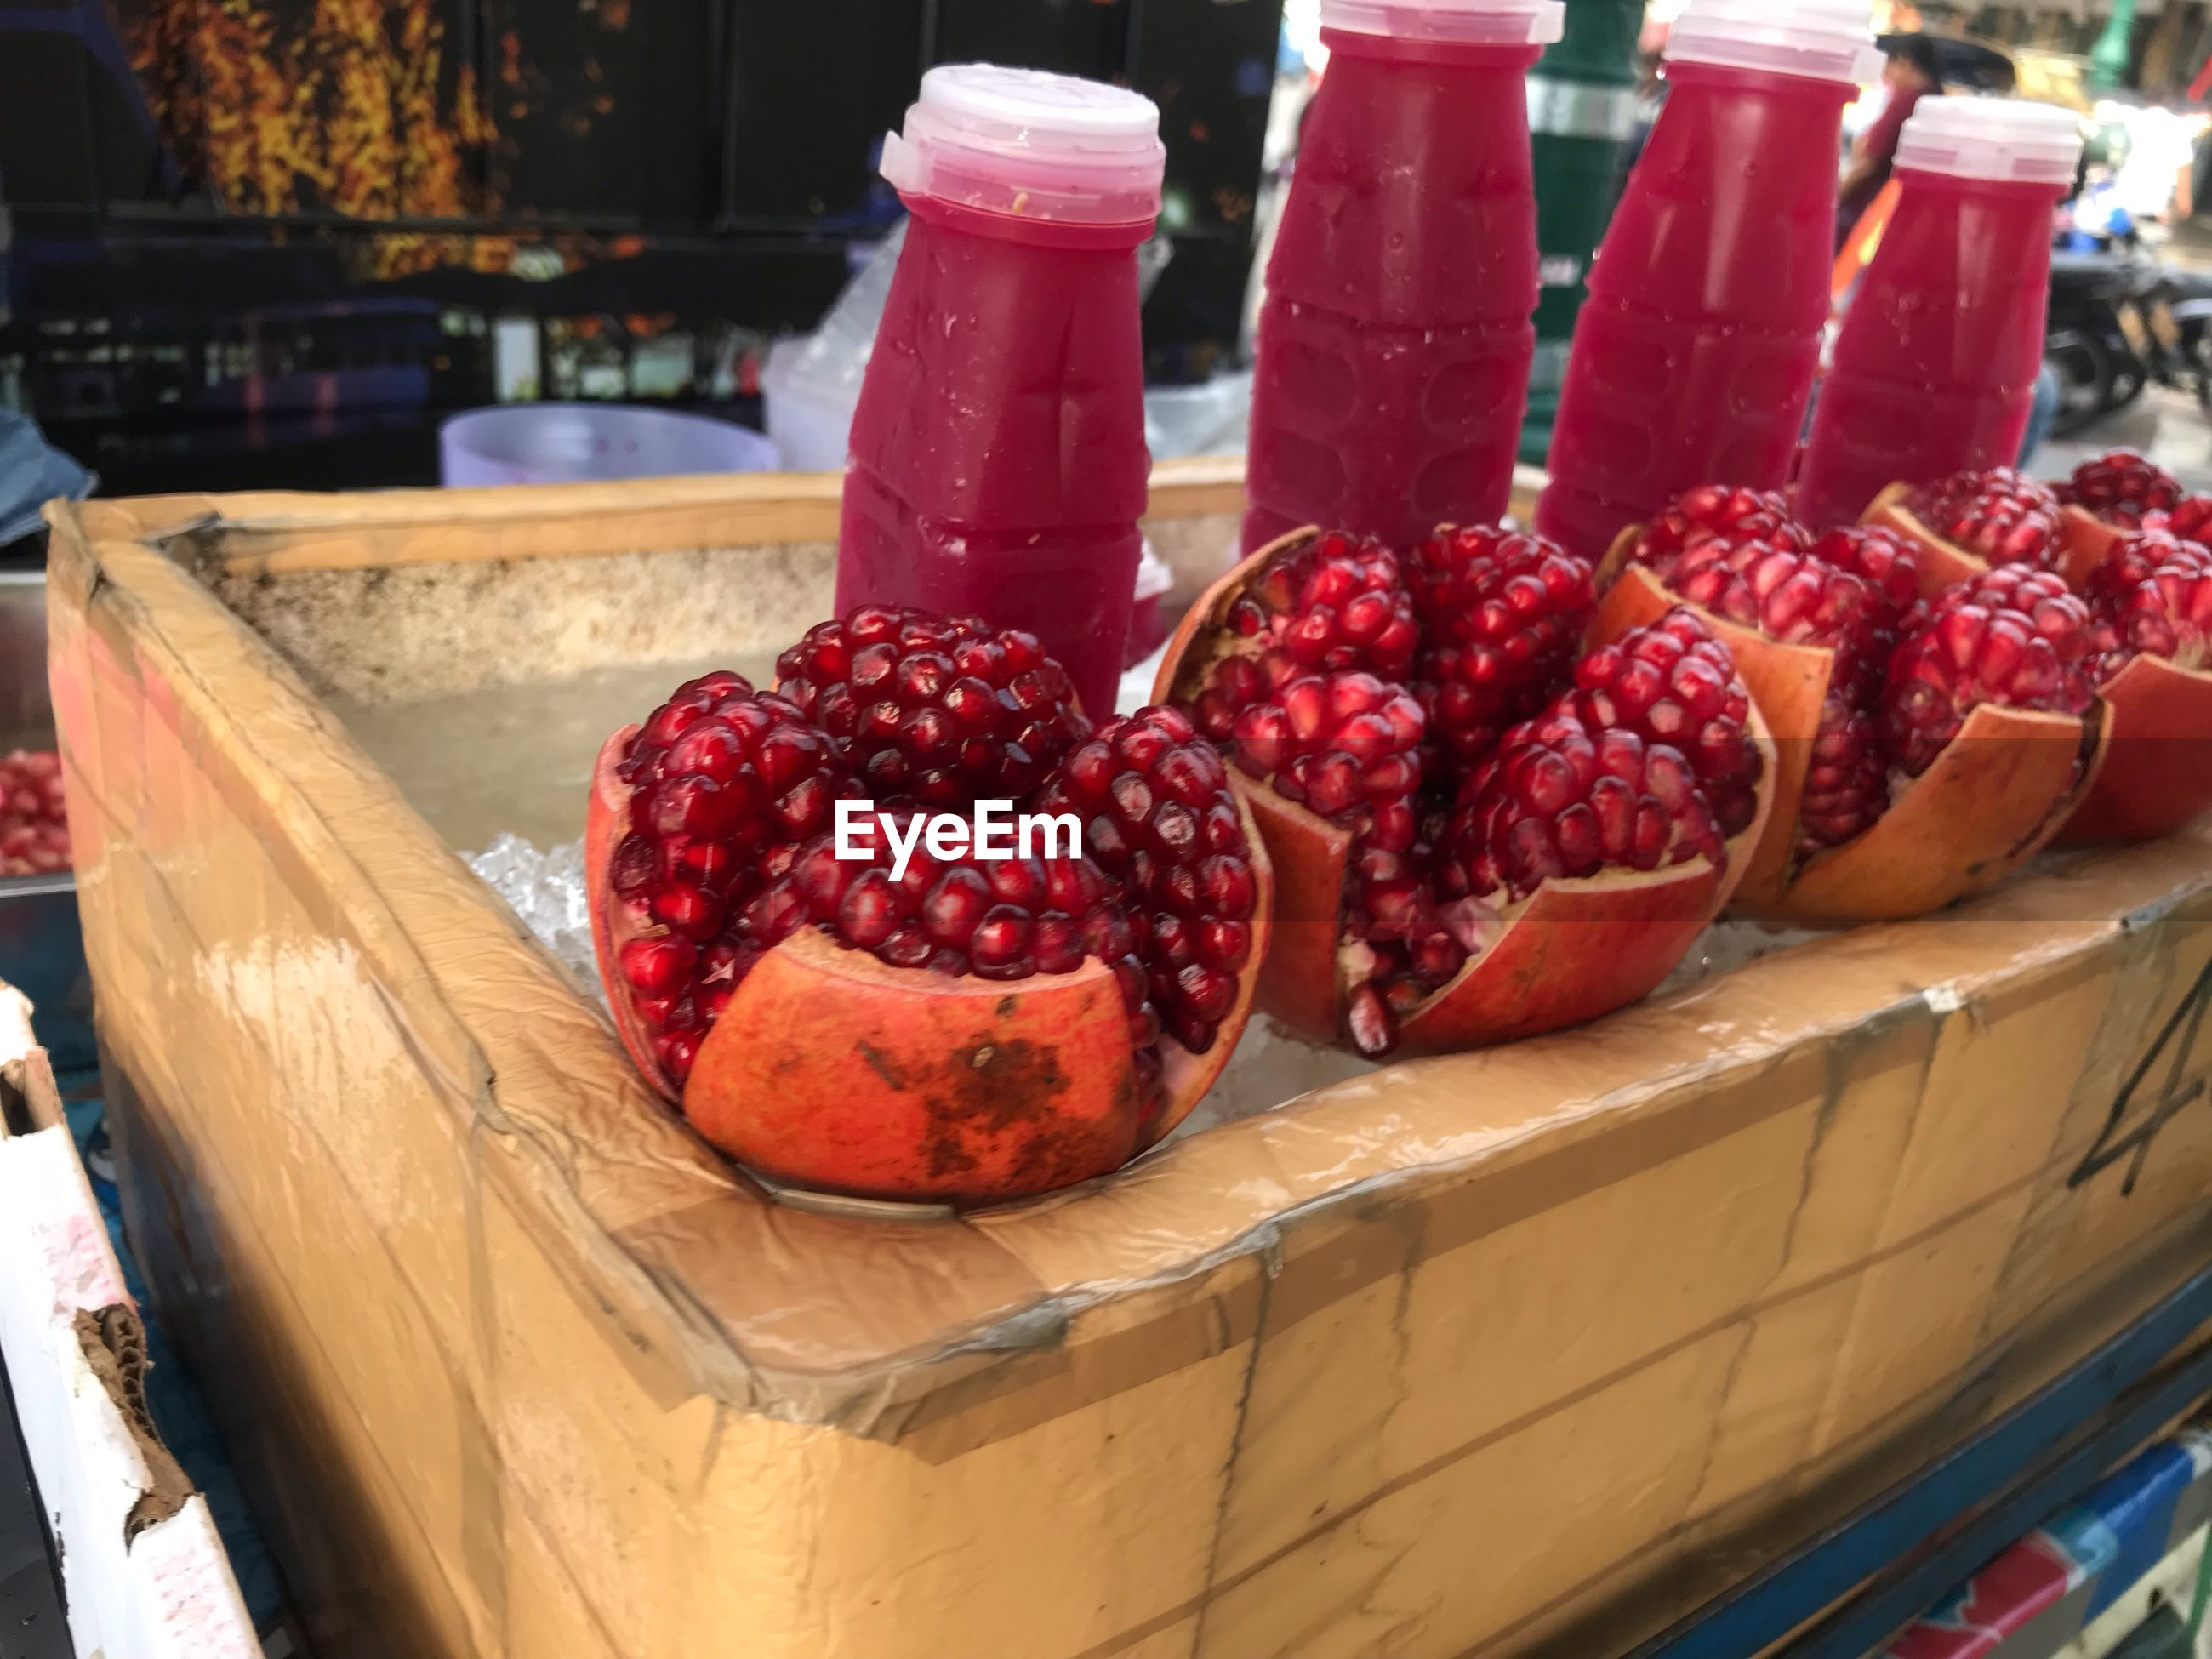 CLOSE-UP OF FRESH FRUITS IN CONTAINER